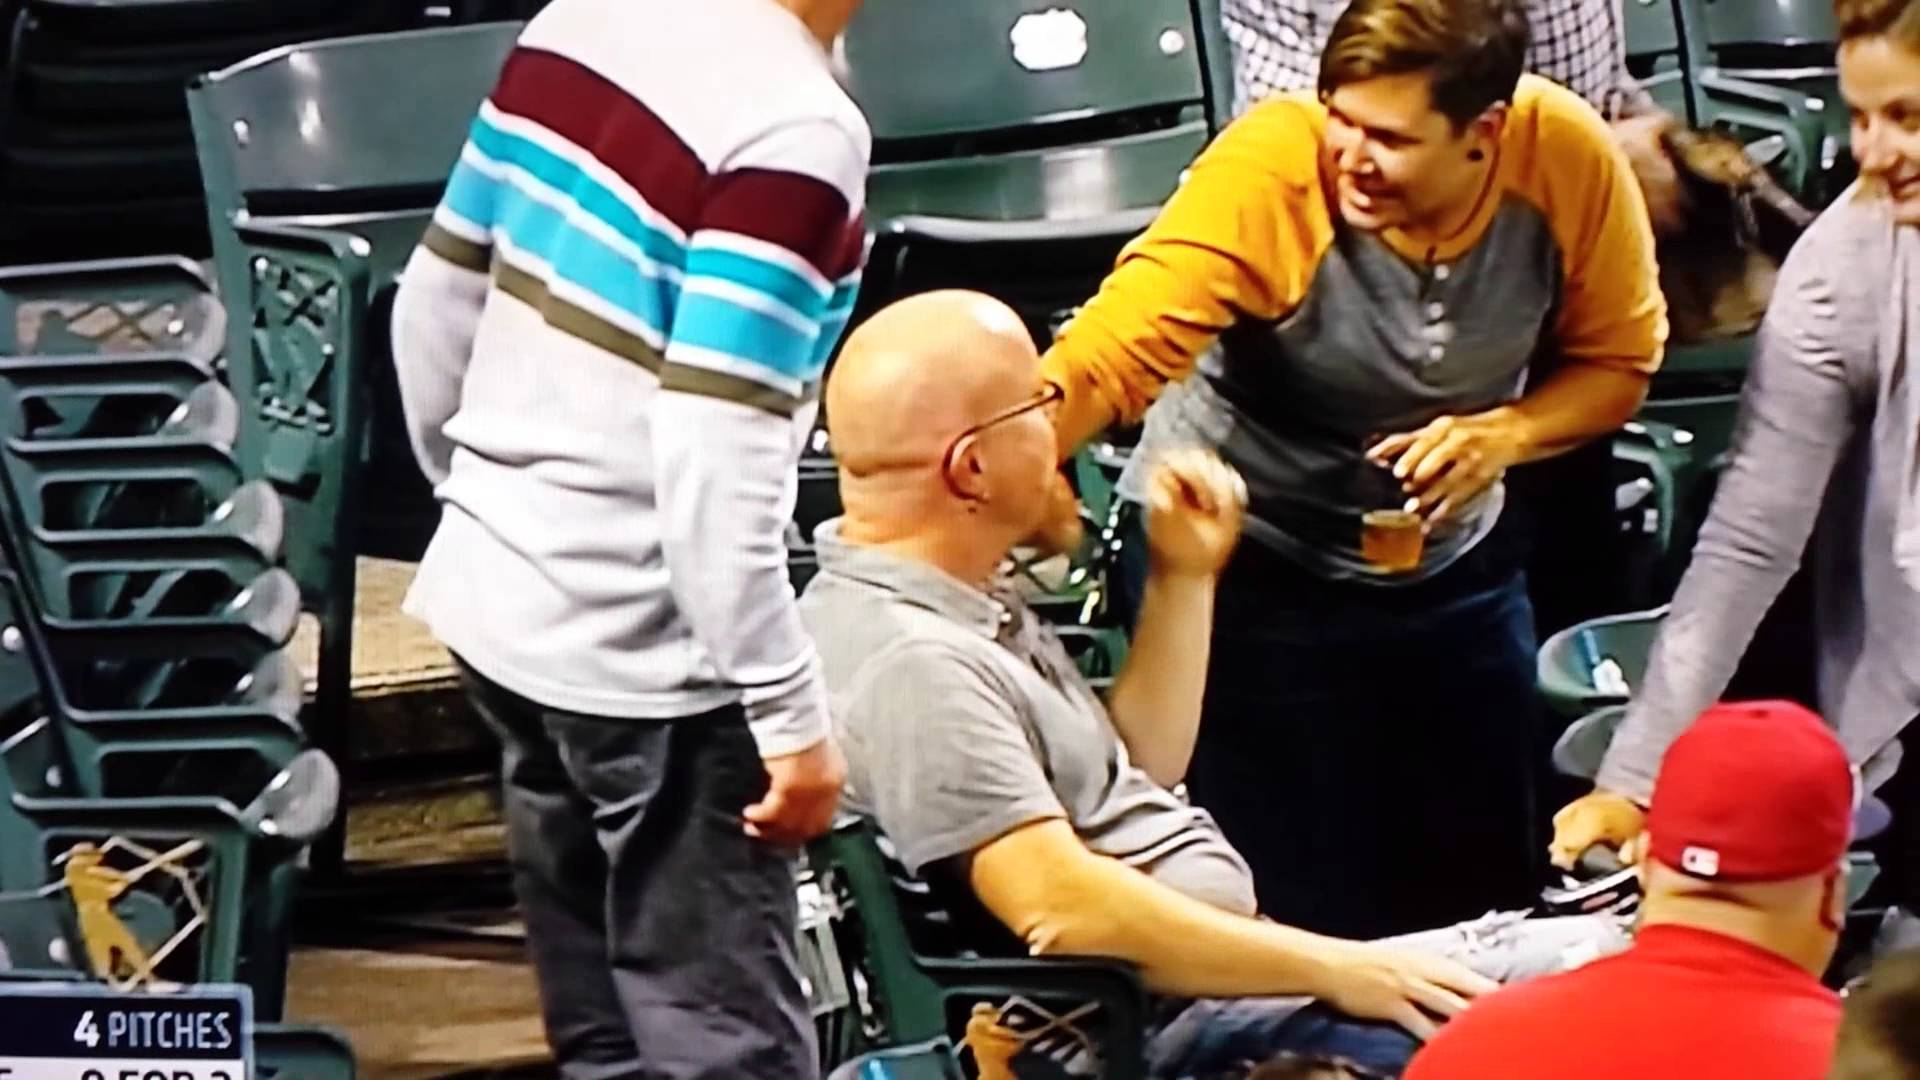 Ouch: Fan hit in head by a foul ball at Indians game